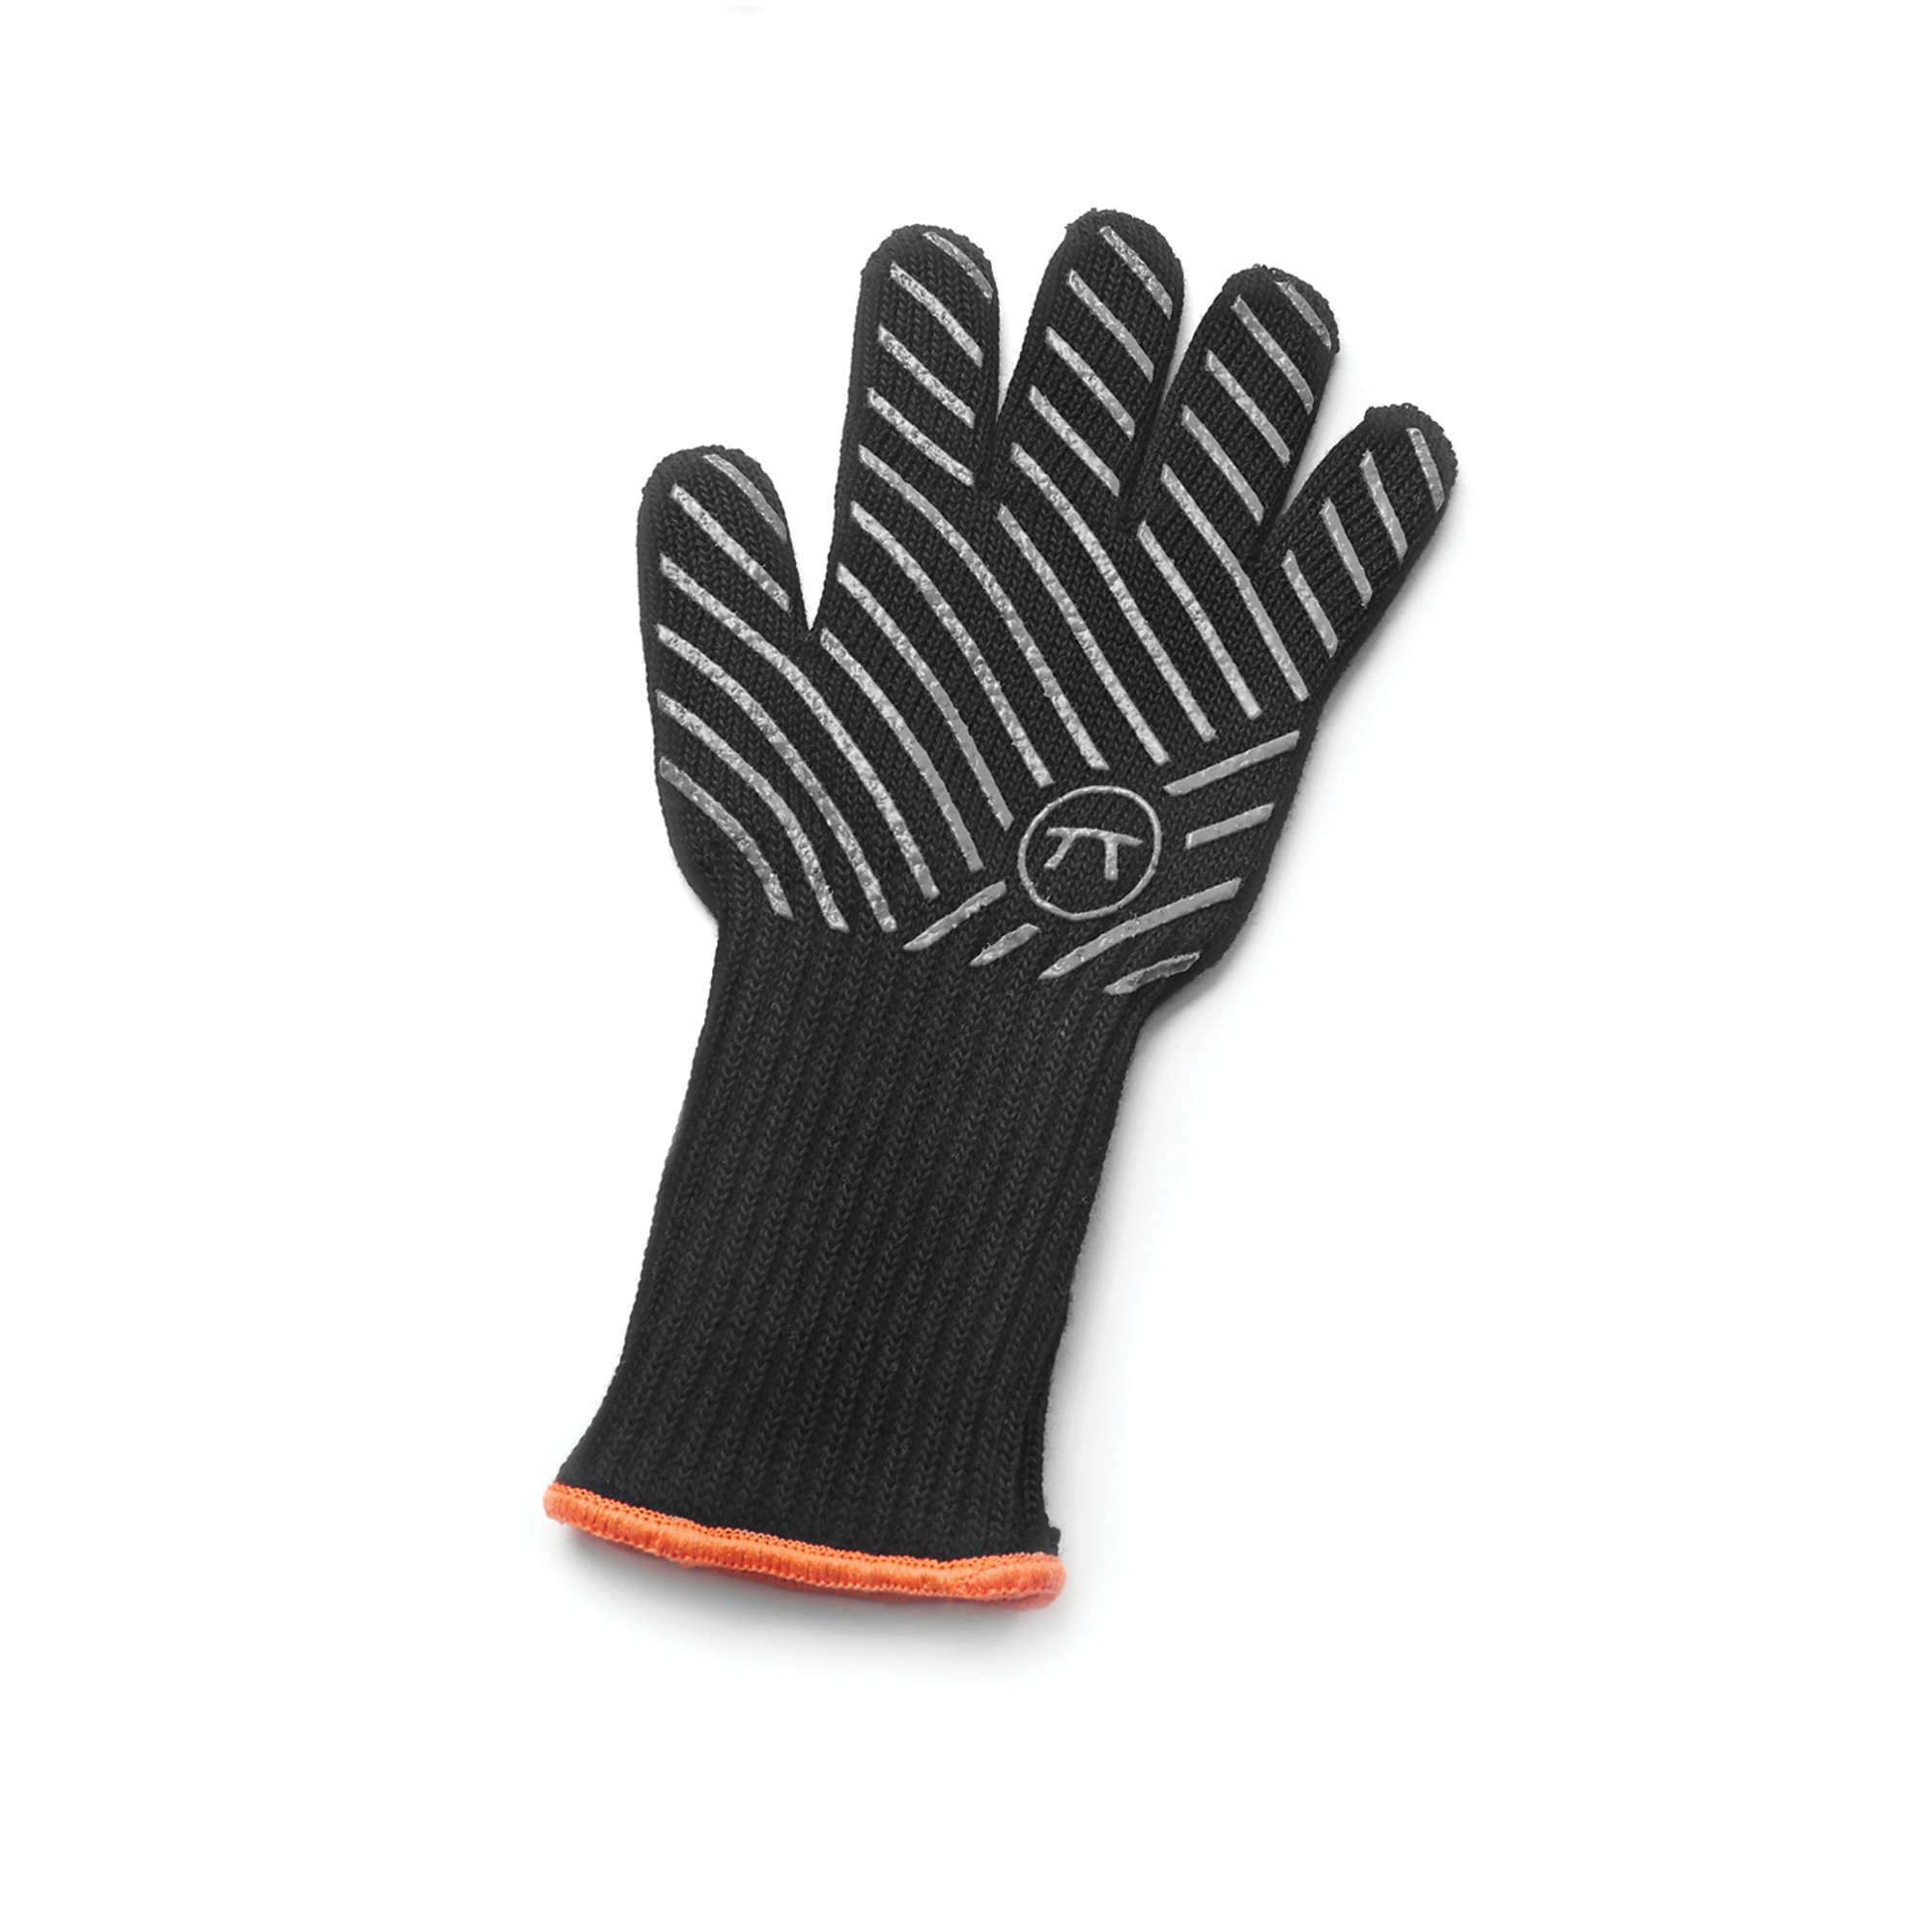 Outset 76254 Professional High Temperature Grill Glove, Large/X-Large